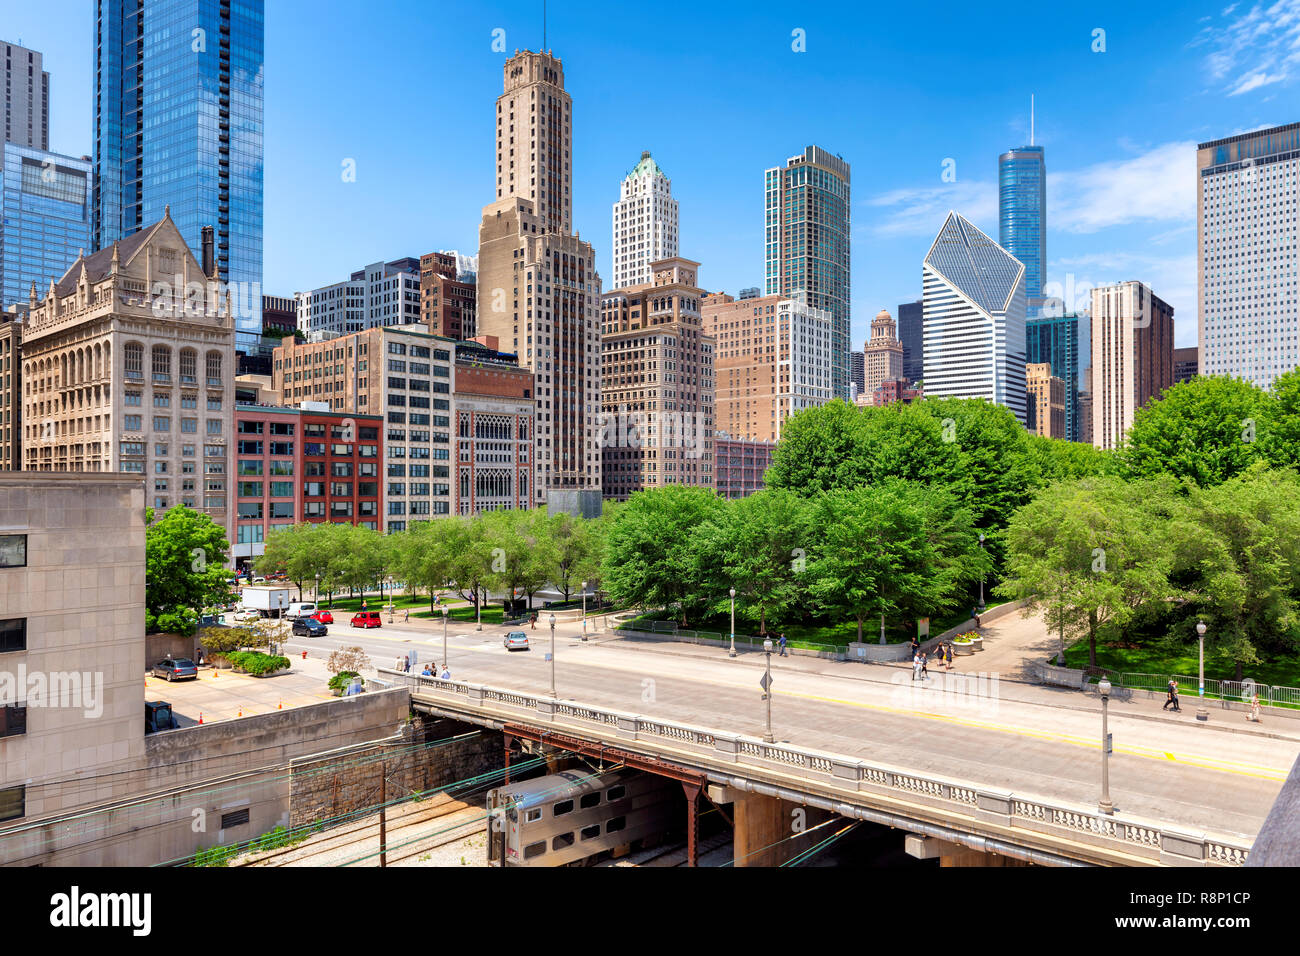 Scenic view of Chicago downtown at summer day, Chicago, Illinois. - Stock Image